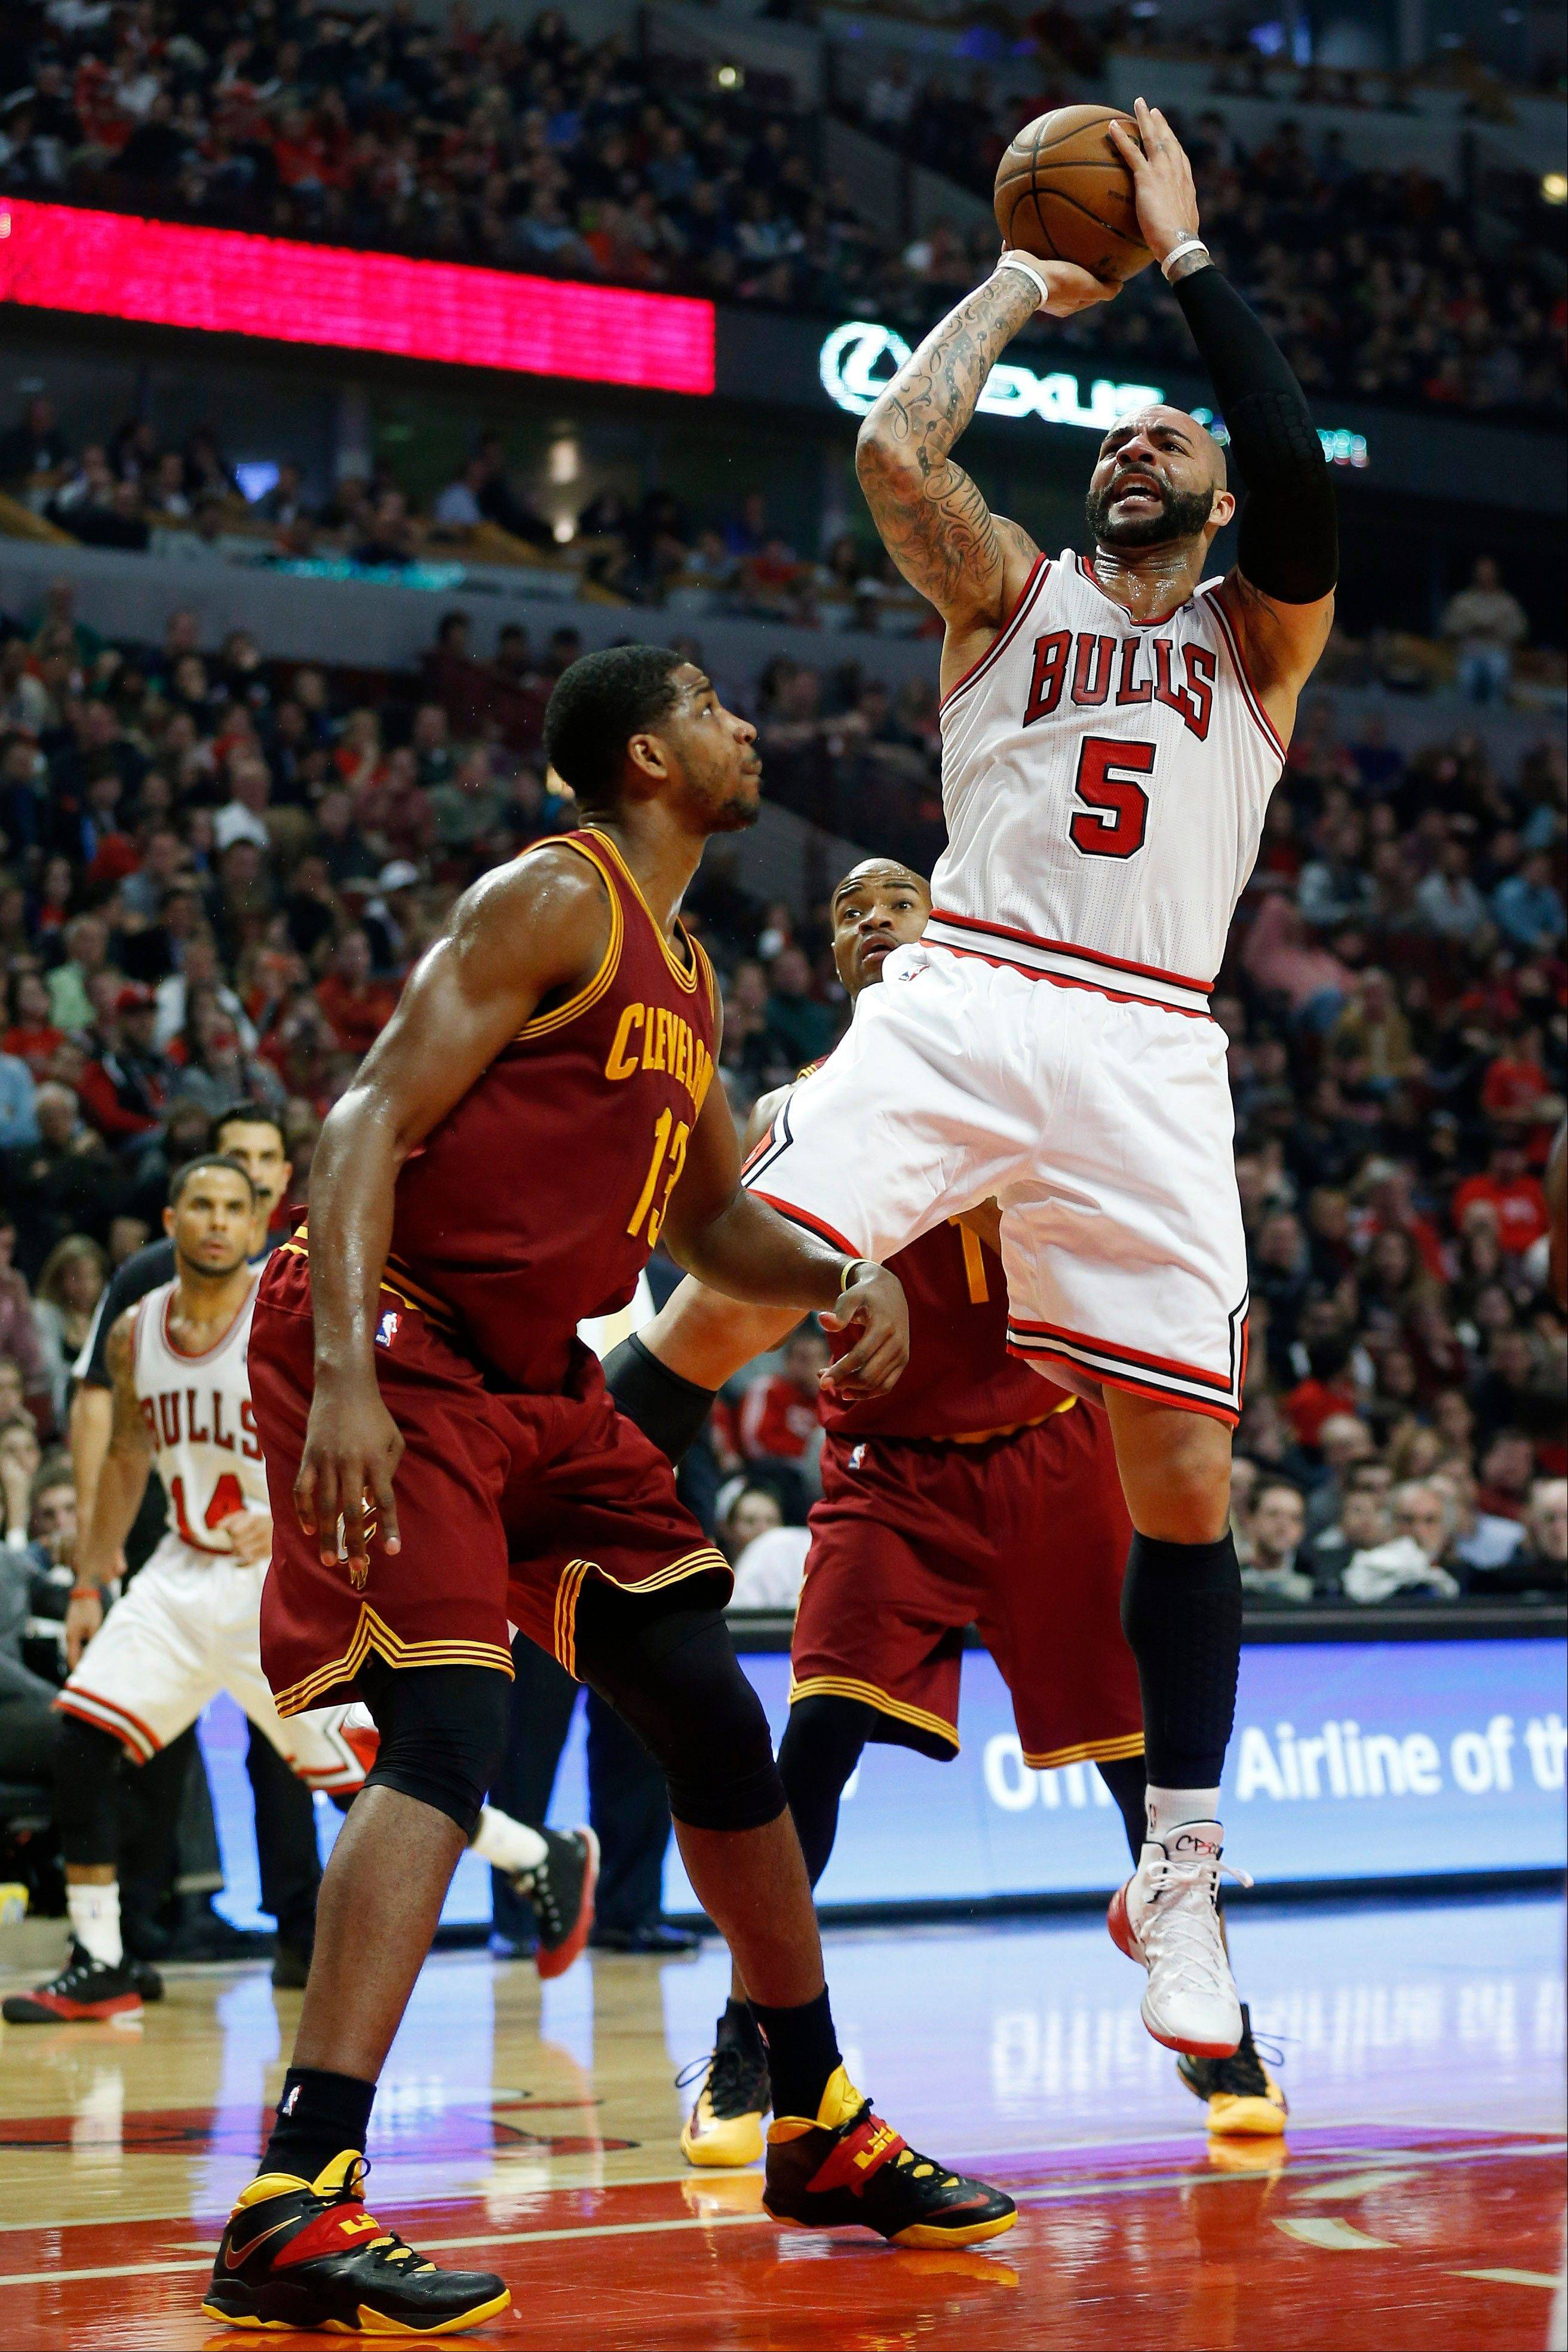 Carlos Boozer and the Bulls will shoot for Christmas Day victory over the Brooklyn Nets on Wednesday. It's the opener of a five-game holiday gift from the NBA.